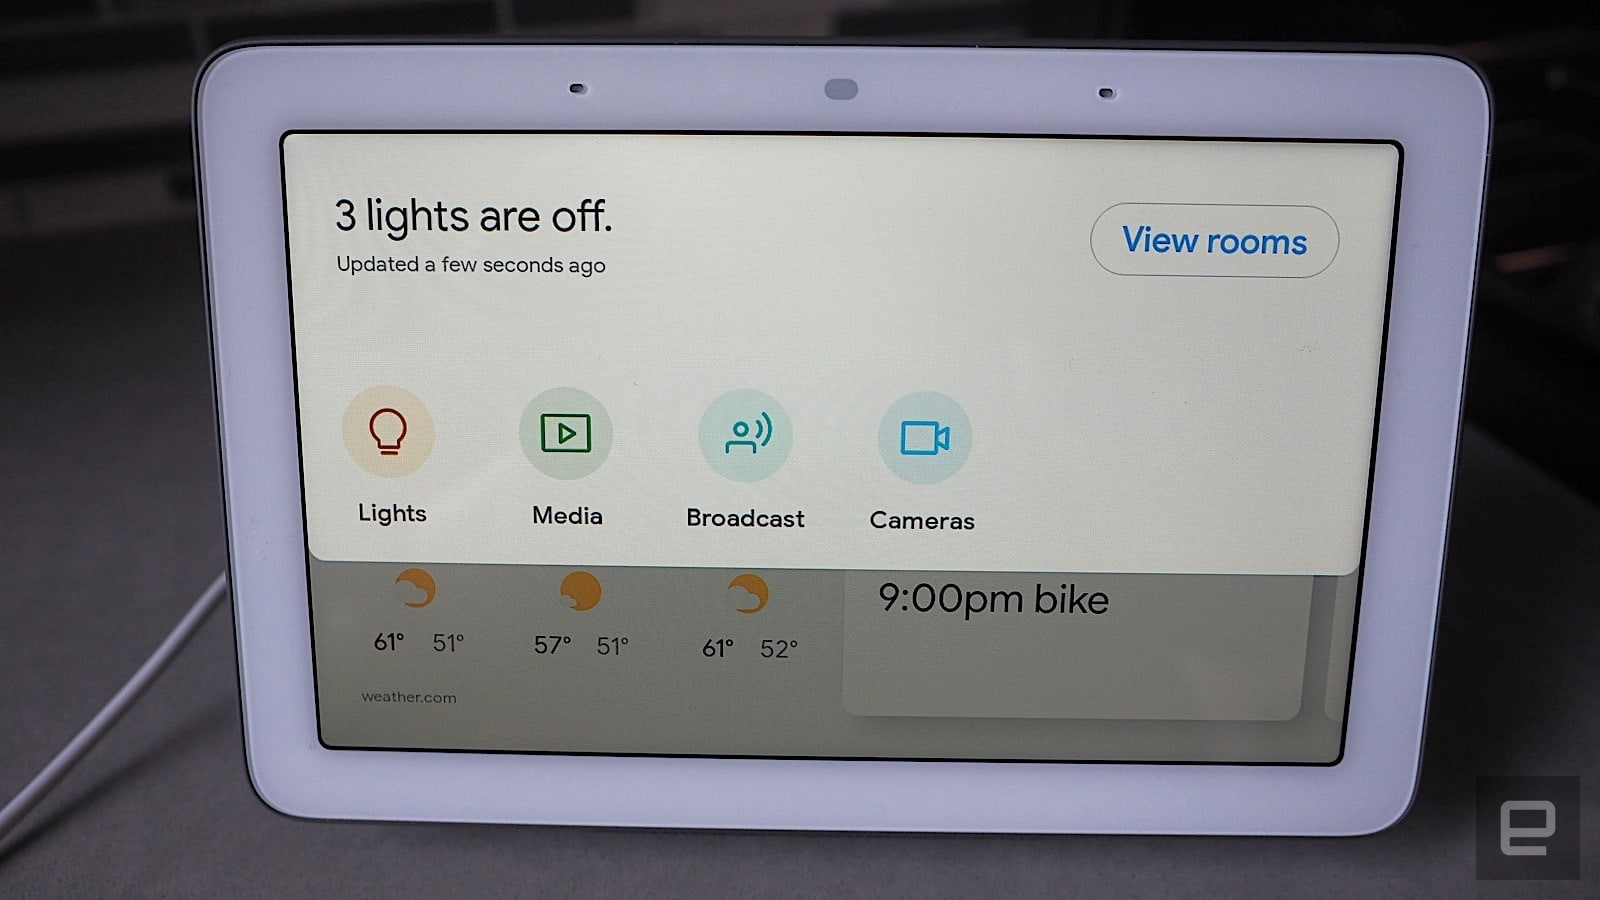 Google Assistant will quietly obey your light-switching commands